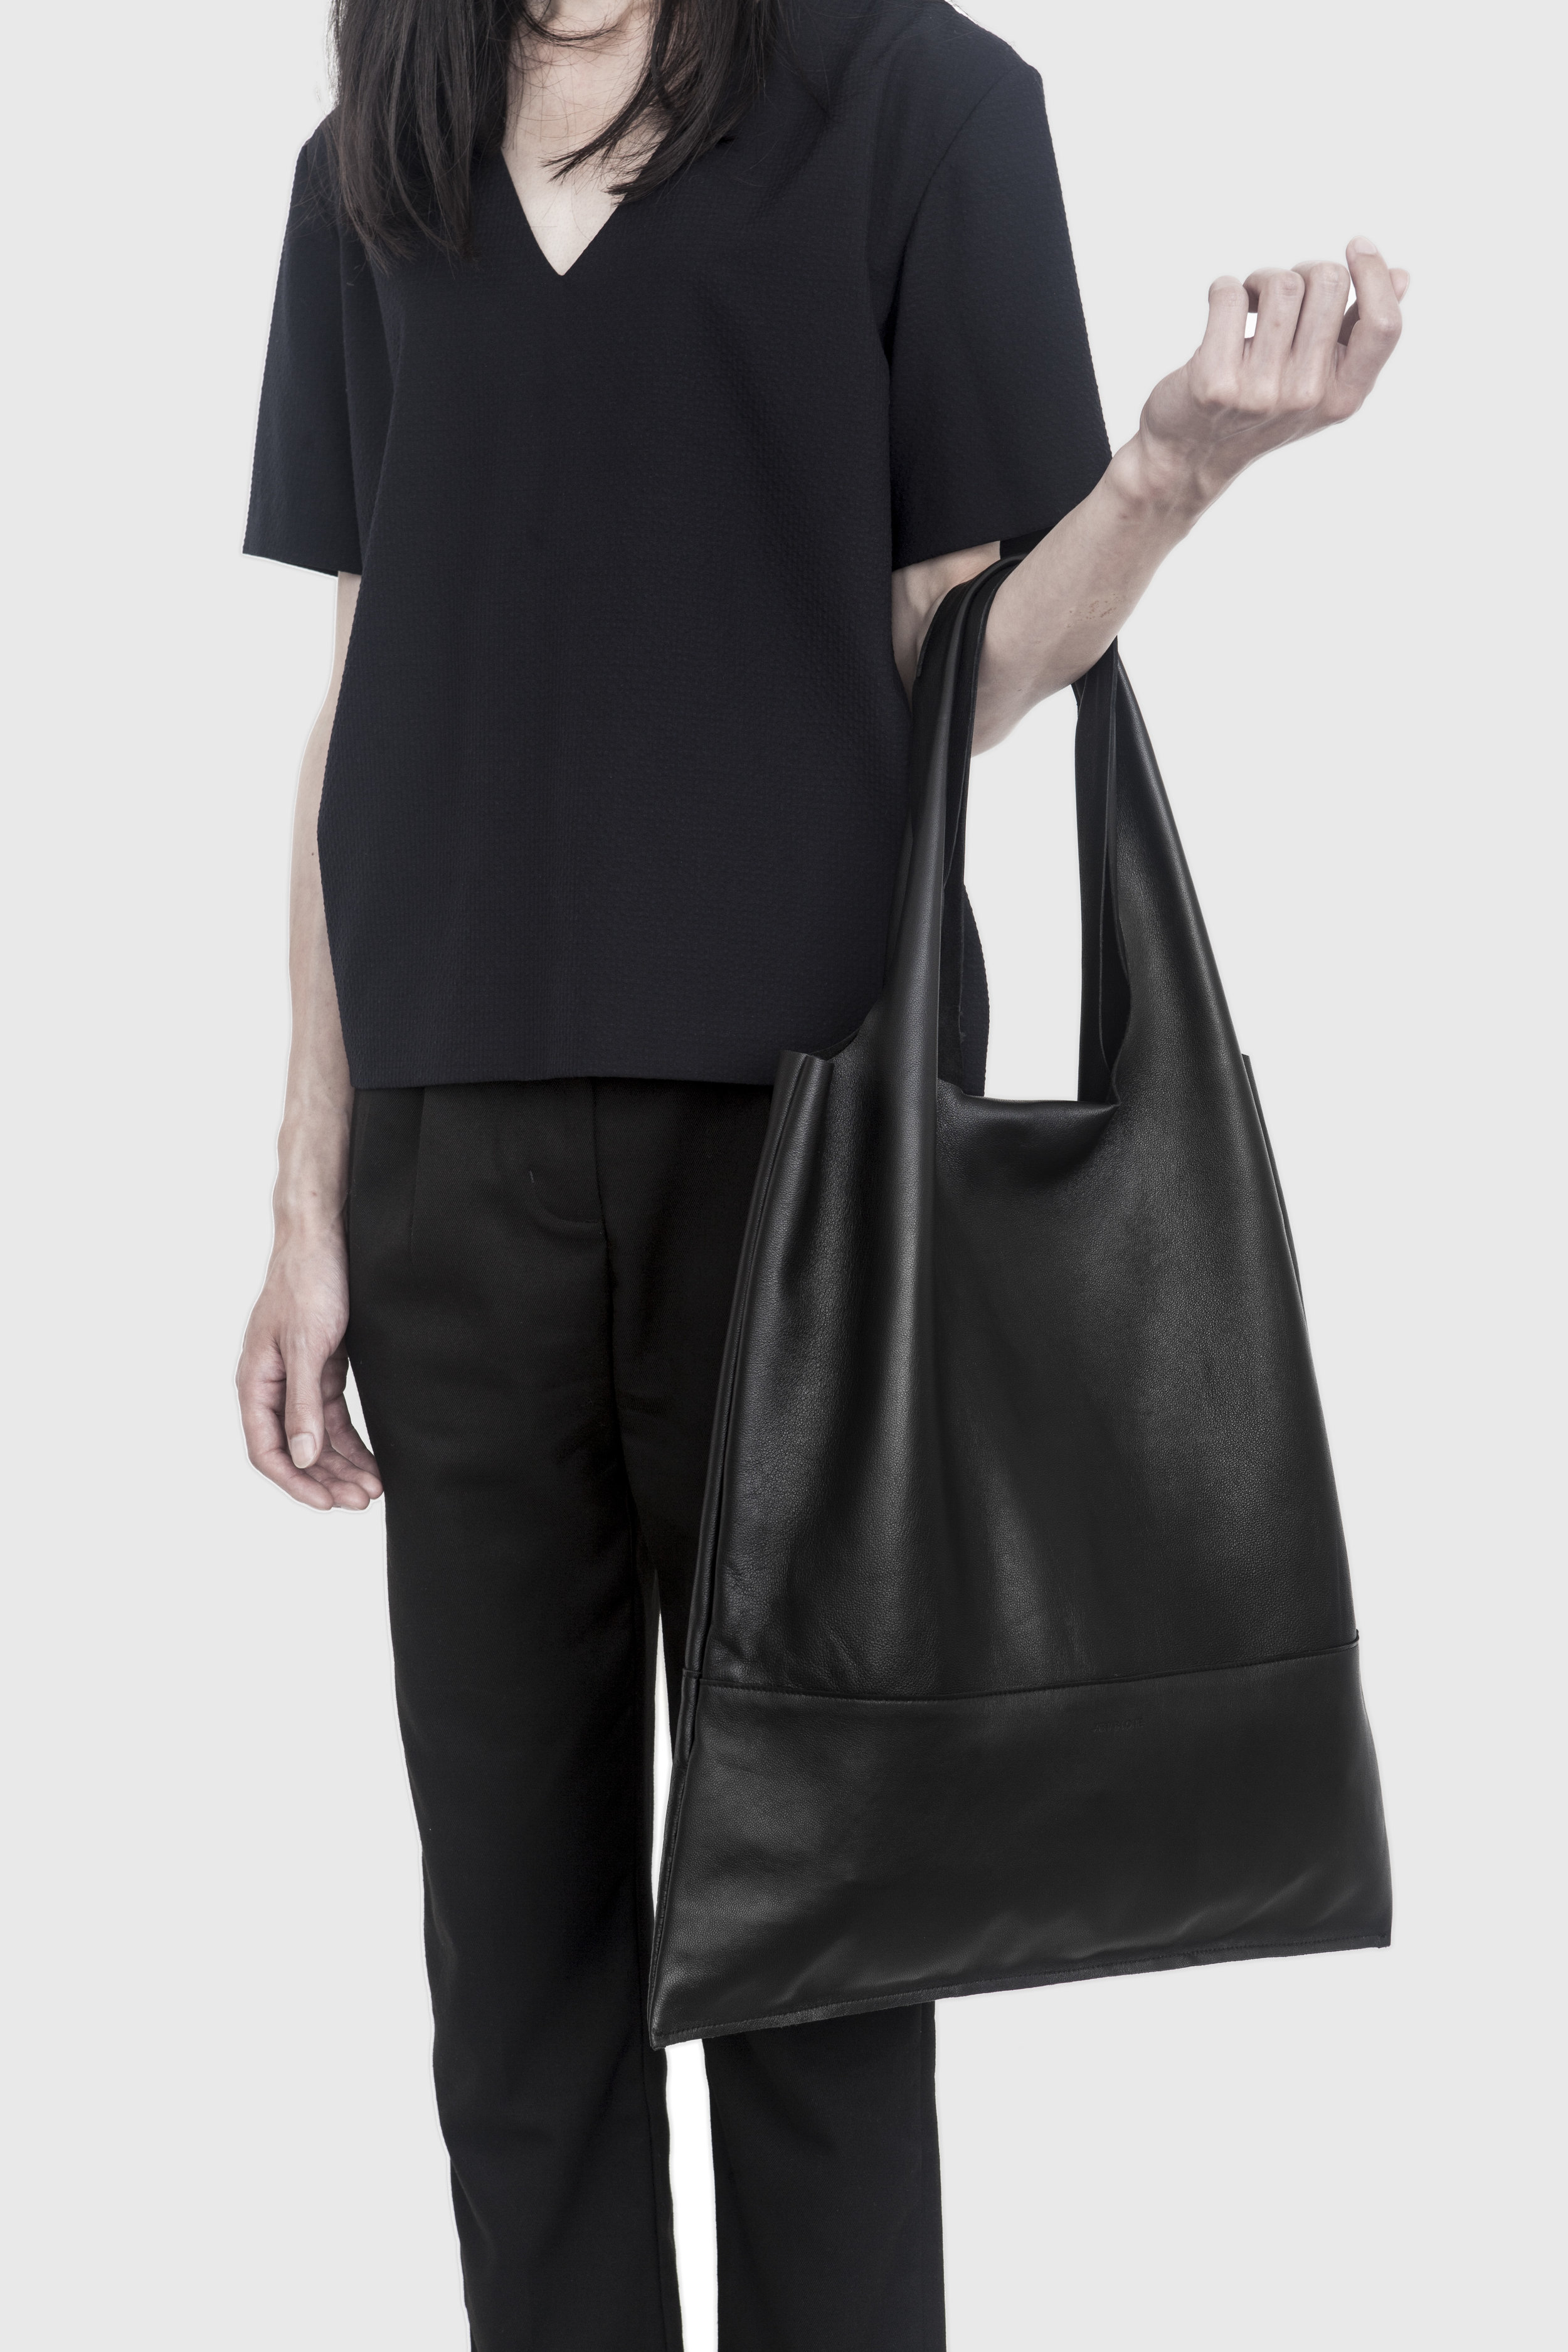 SHOPPER - BLACK LAMB MODEL.jpg